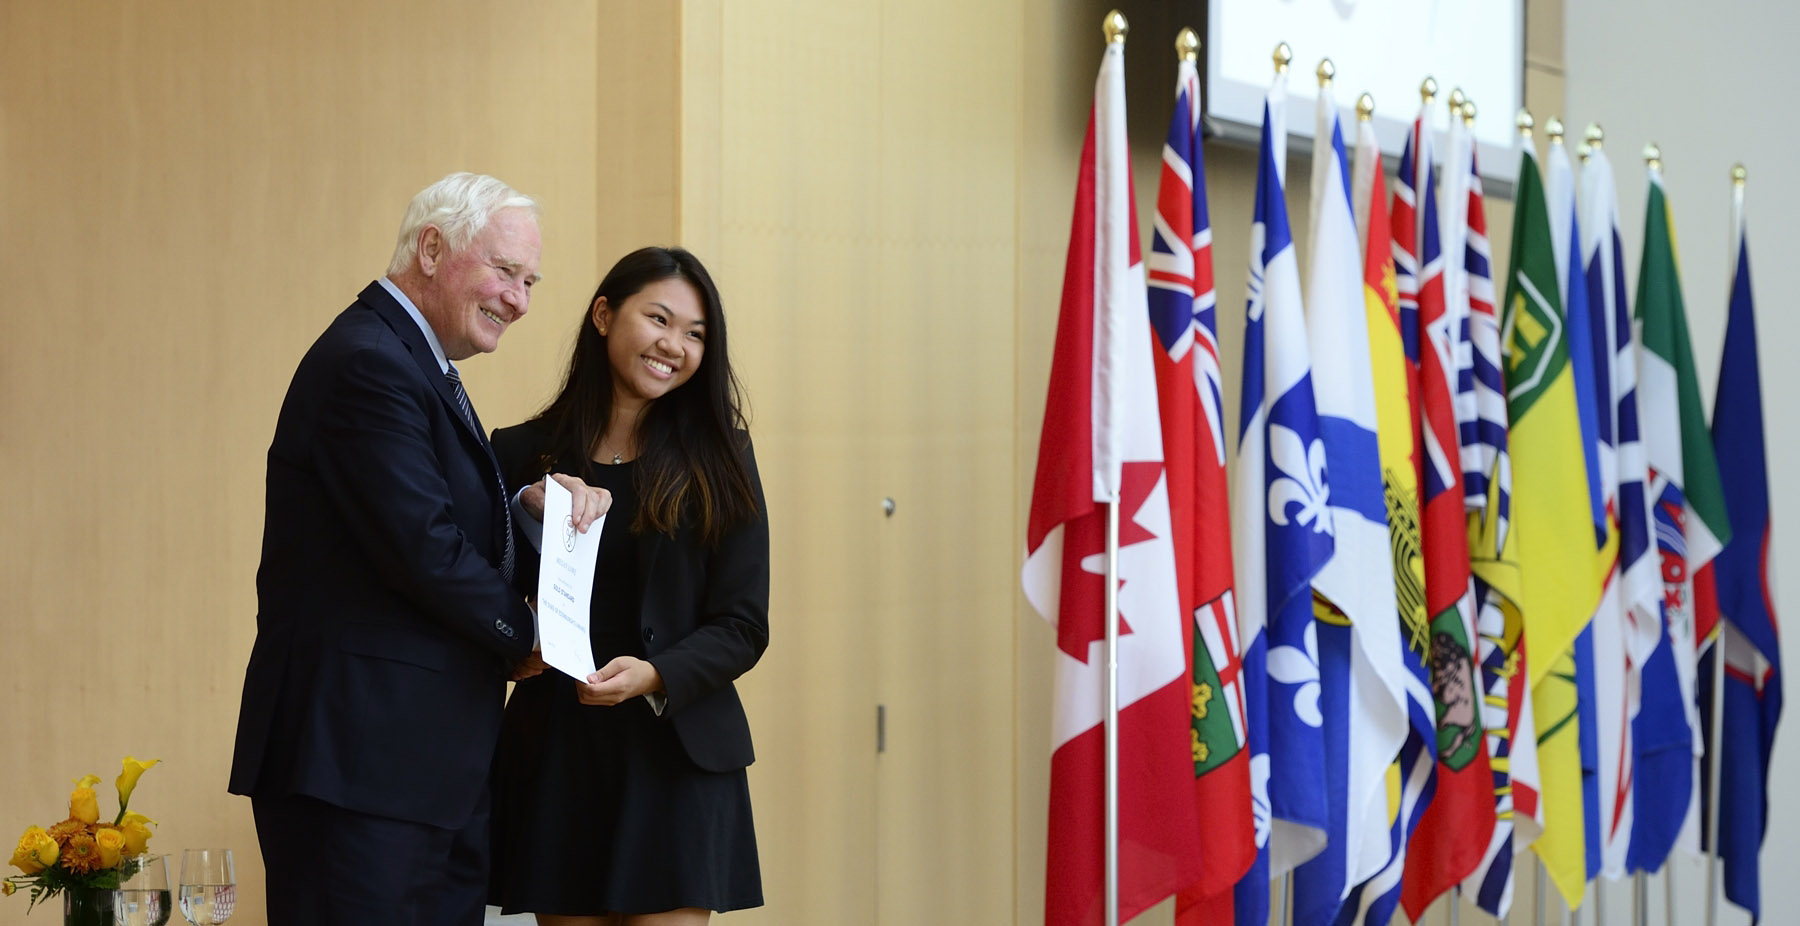 Later, the Governor General presented The Duke of Edinburgh's Gold Award to more than 60 young people from across Canada at the  Ismaili Centre in Toronto.